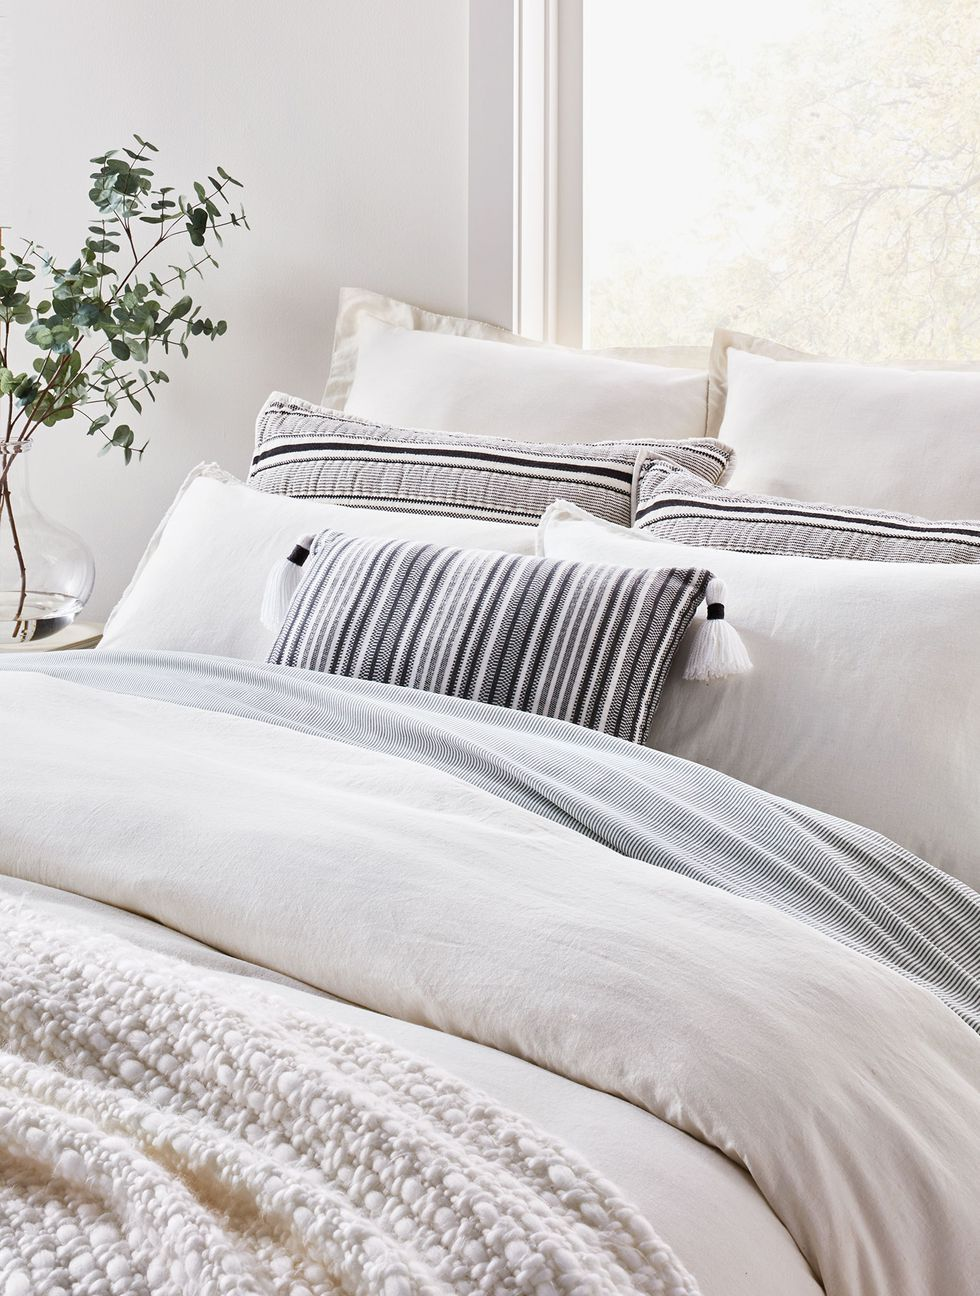 Joanna Gaines New Bedding For Target Will Help You Sleep Like A Baby Joanna Gaines Bedding Farmhouse Bedding Sets Classic Bedding